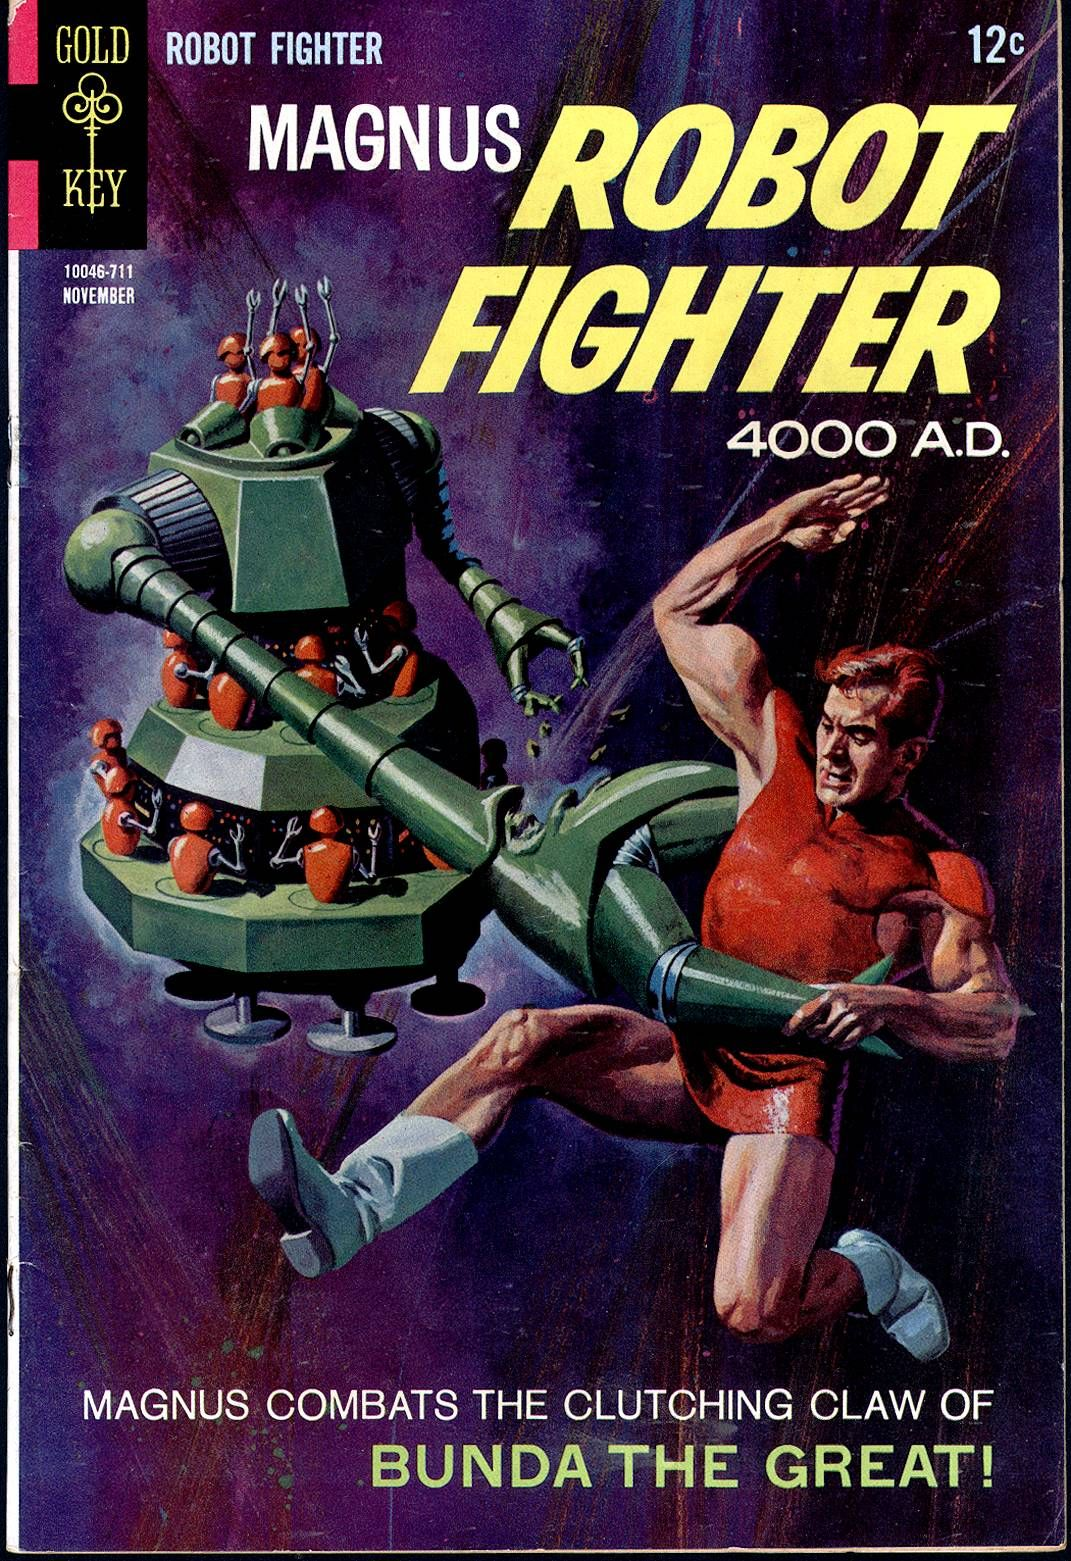 Magnus Robot Fighter 4000 Ad Issue 20 Read Magnus Robot Fighter 4000 Ad Issue 20 Comic Onlin Science Fiction Magazines Vintage Comic Books Vintage Comics